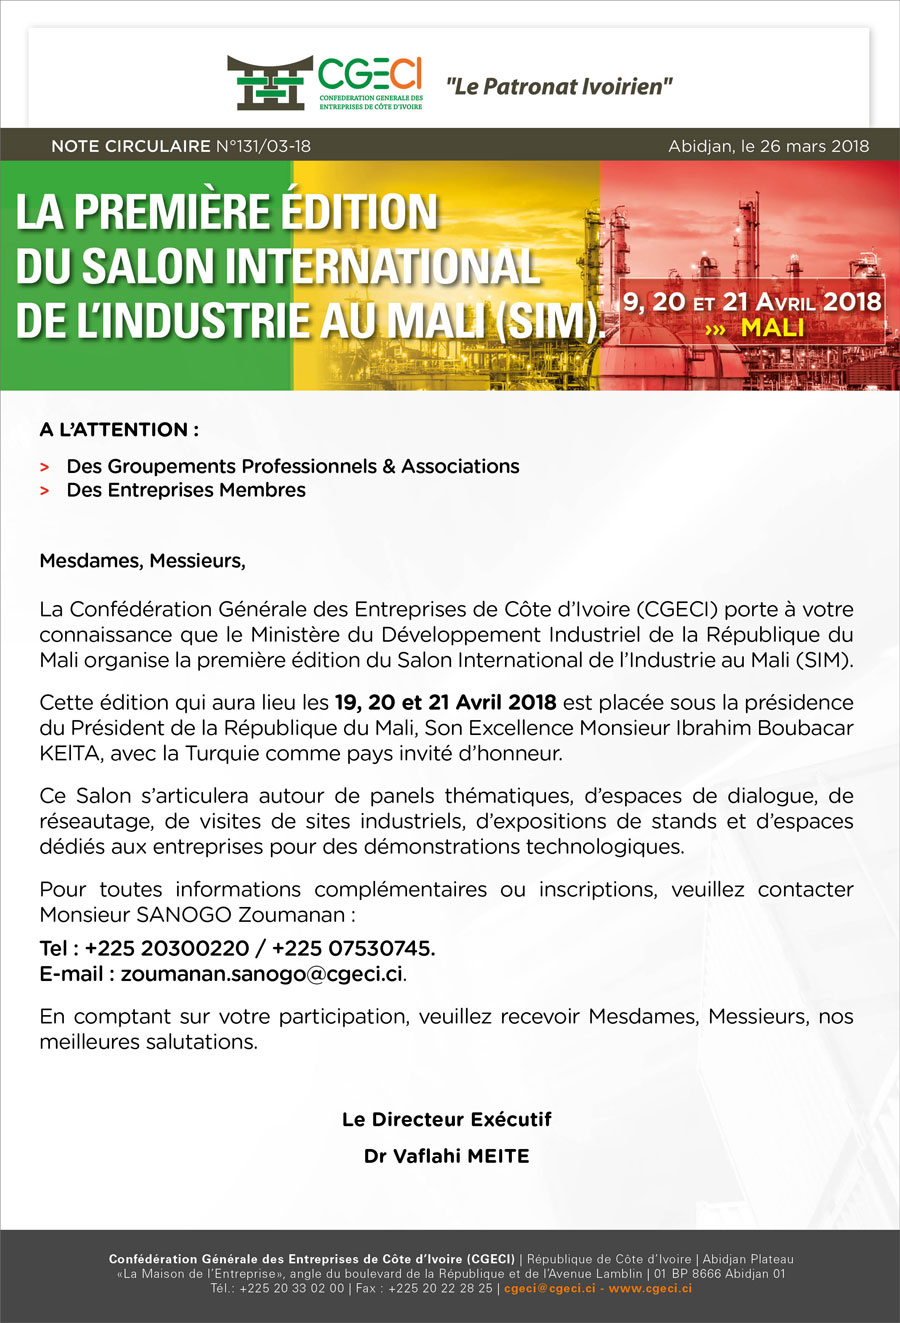 131—La-premieĚre-eědition-du-Salon-International-de-l'Industrie-au-Mali-(SIM).